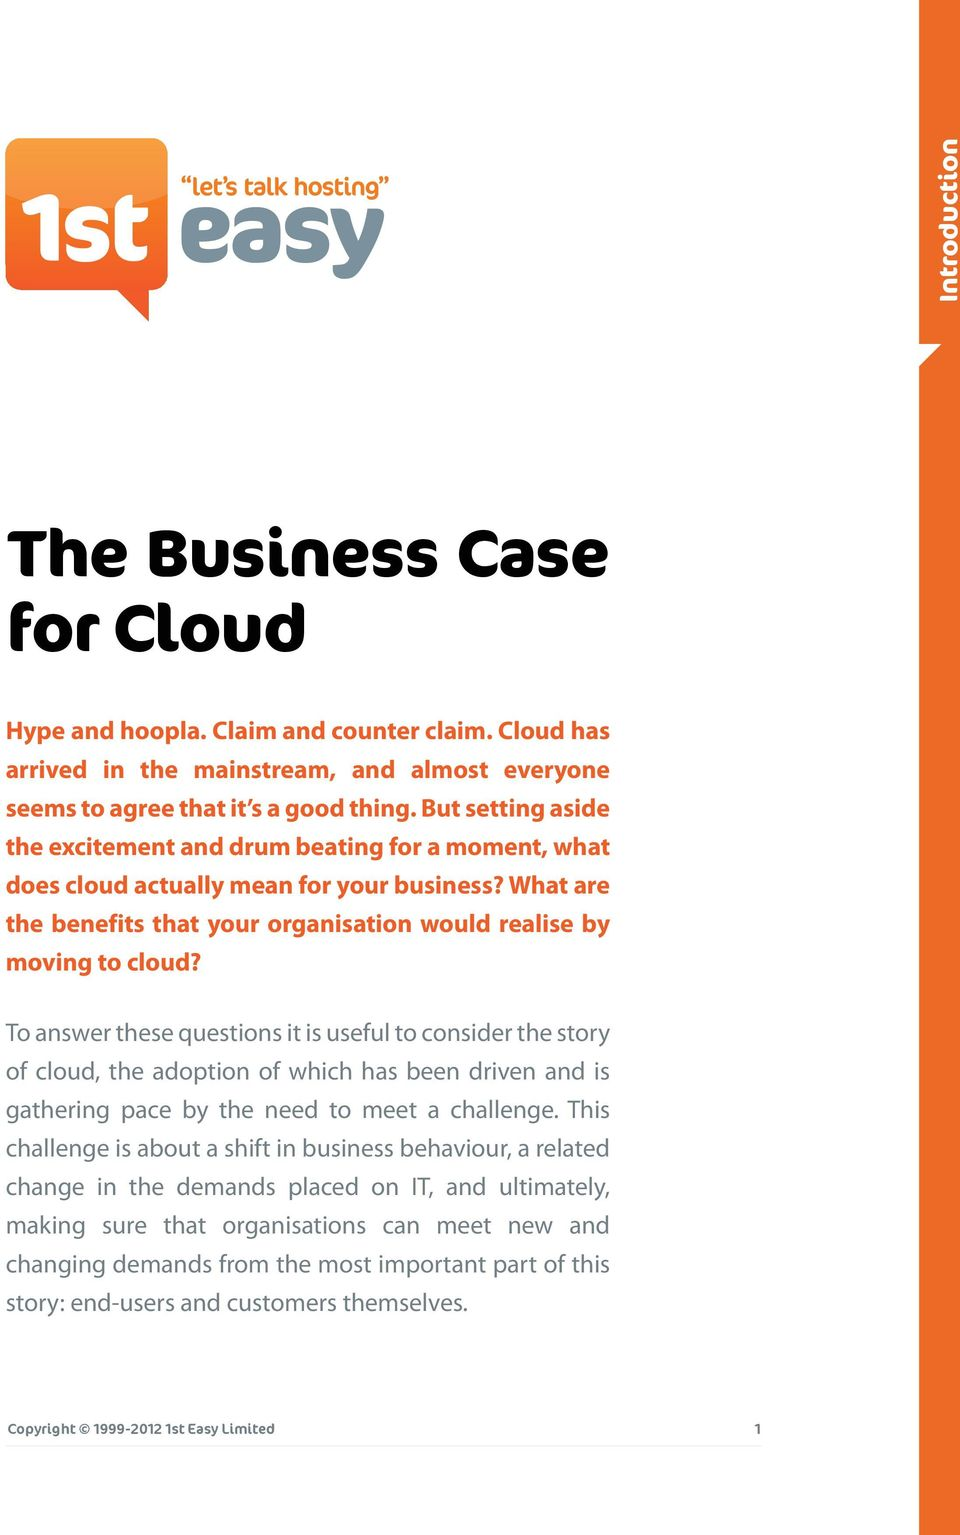 To answer these questions it is useful to consider the story of cloud, the adoption of which has been driven and is gathering pace by the need to meet a challenge.